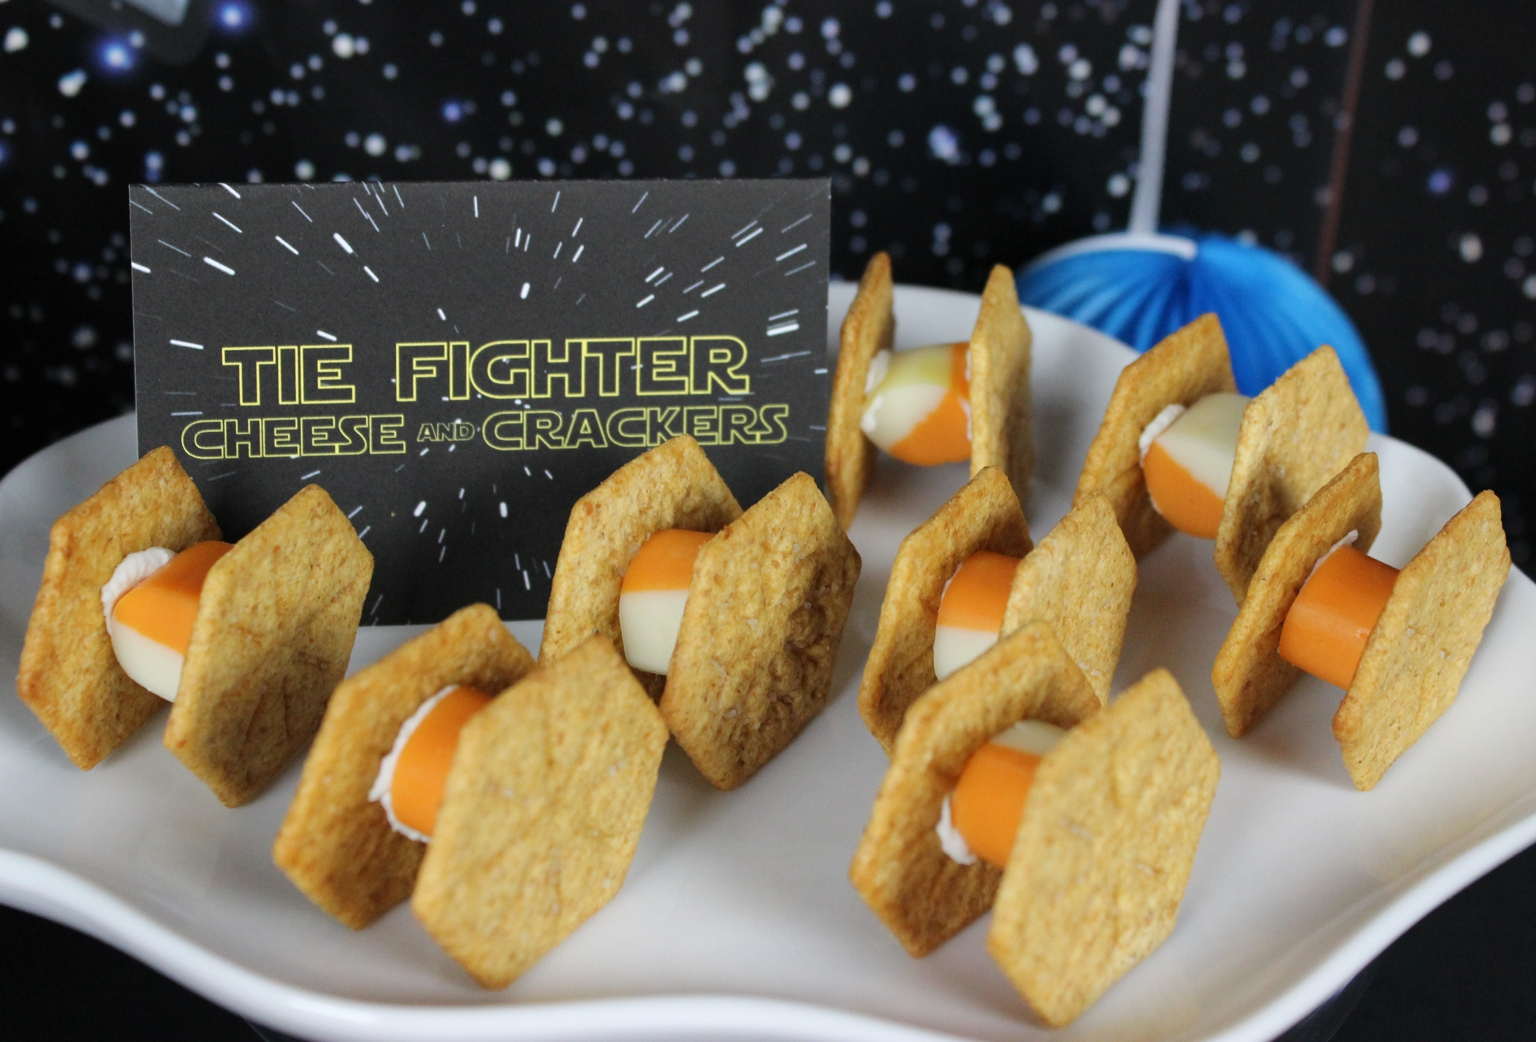 TFA party - TIE Fighter Cheese and Crackers